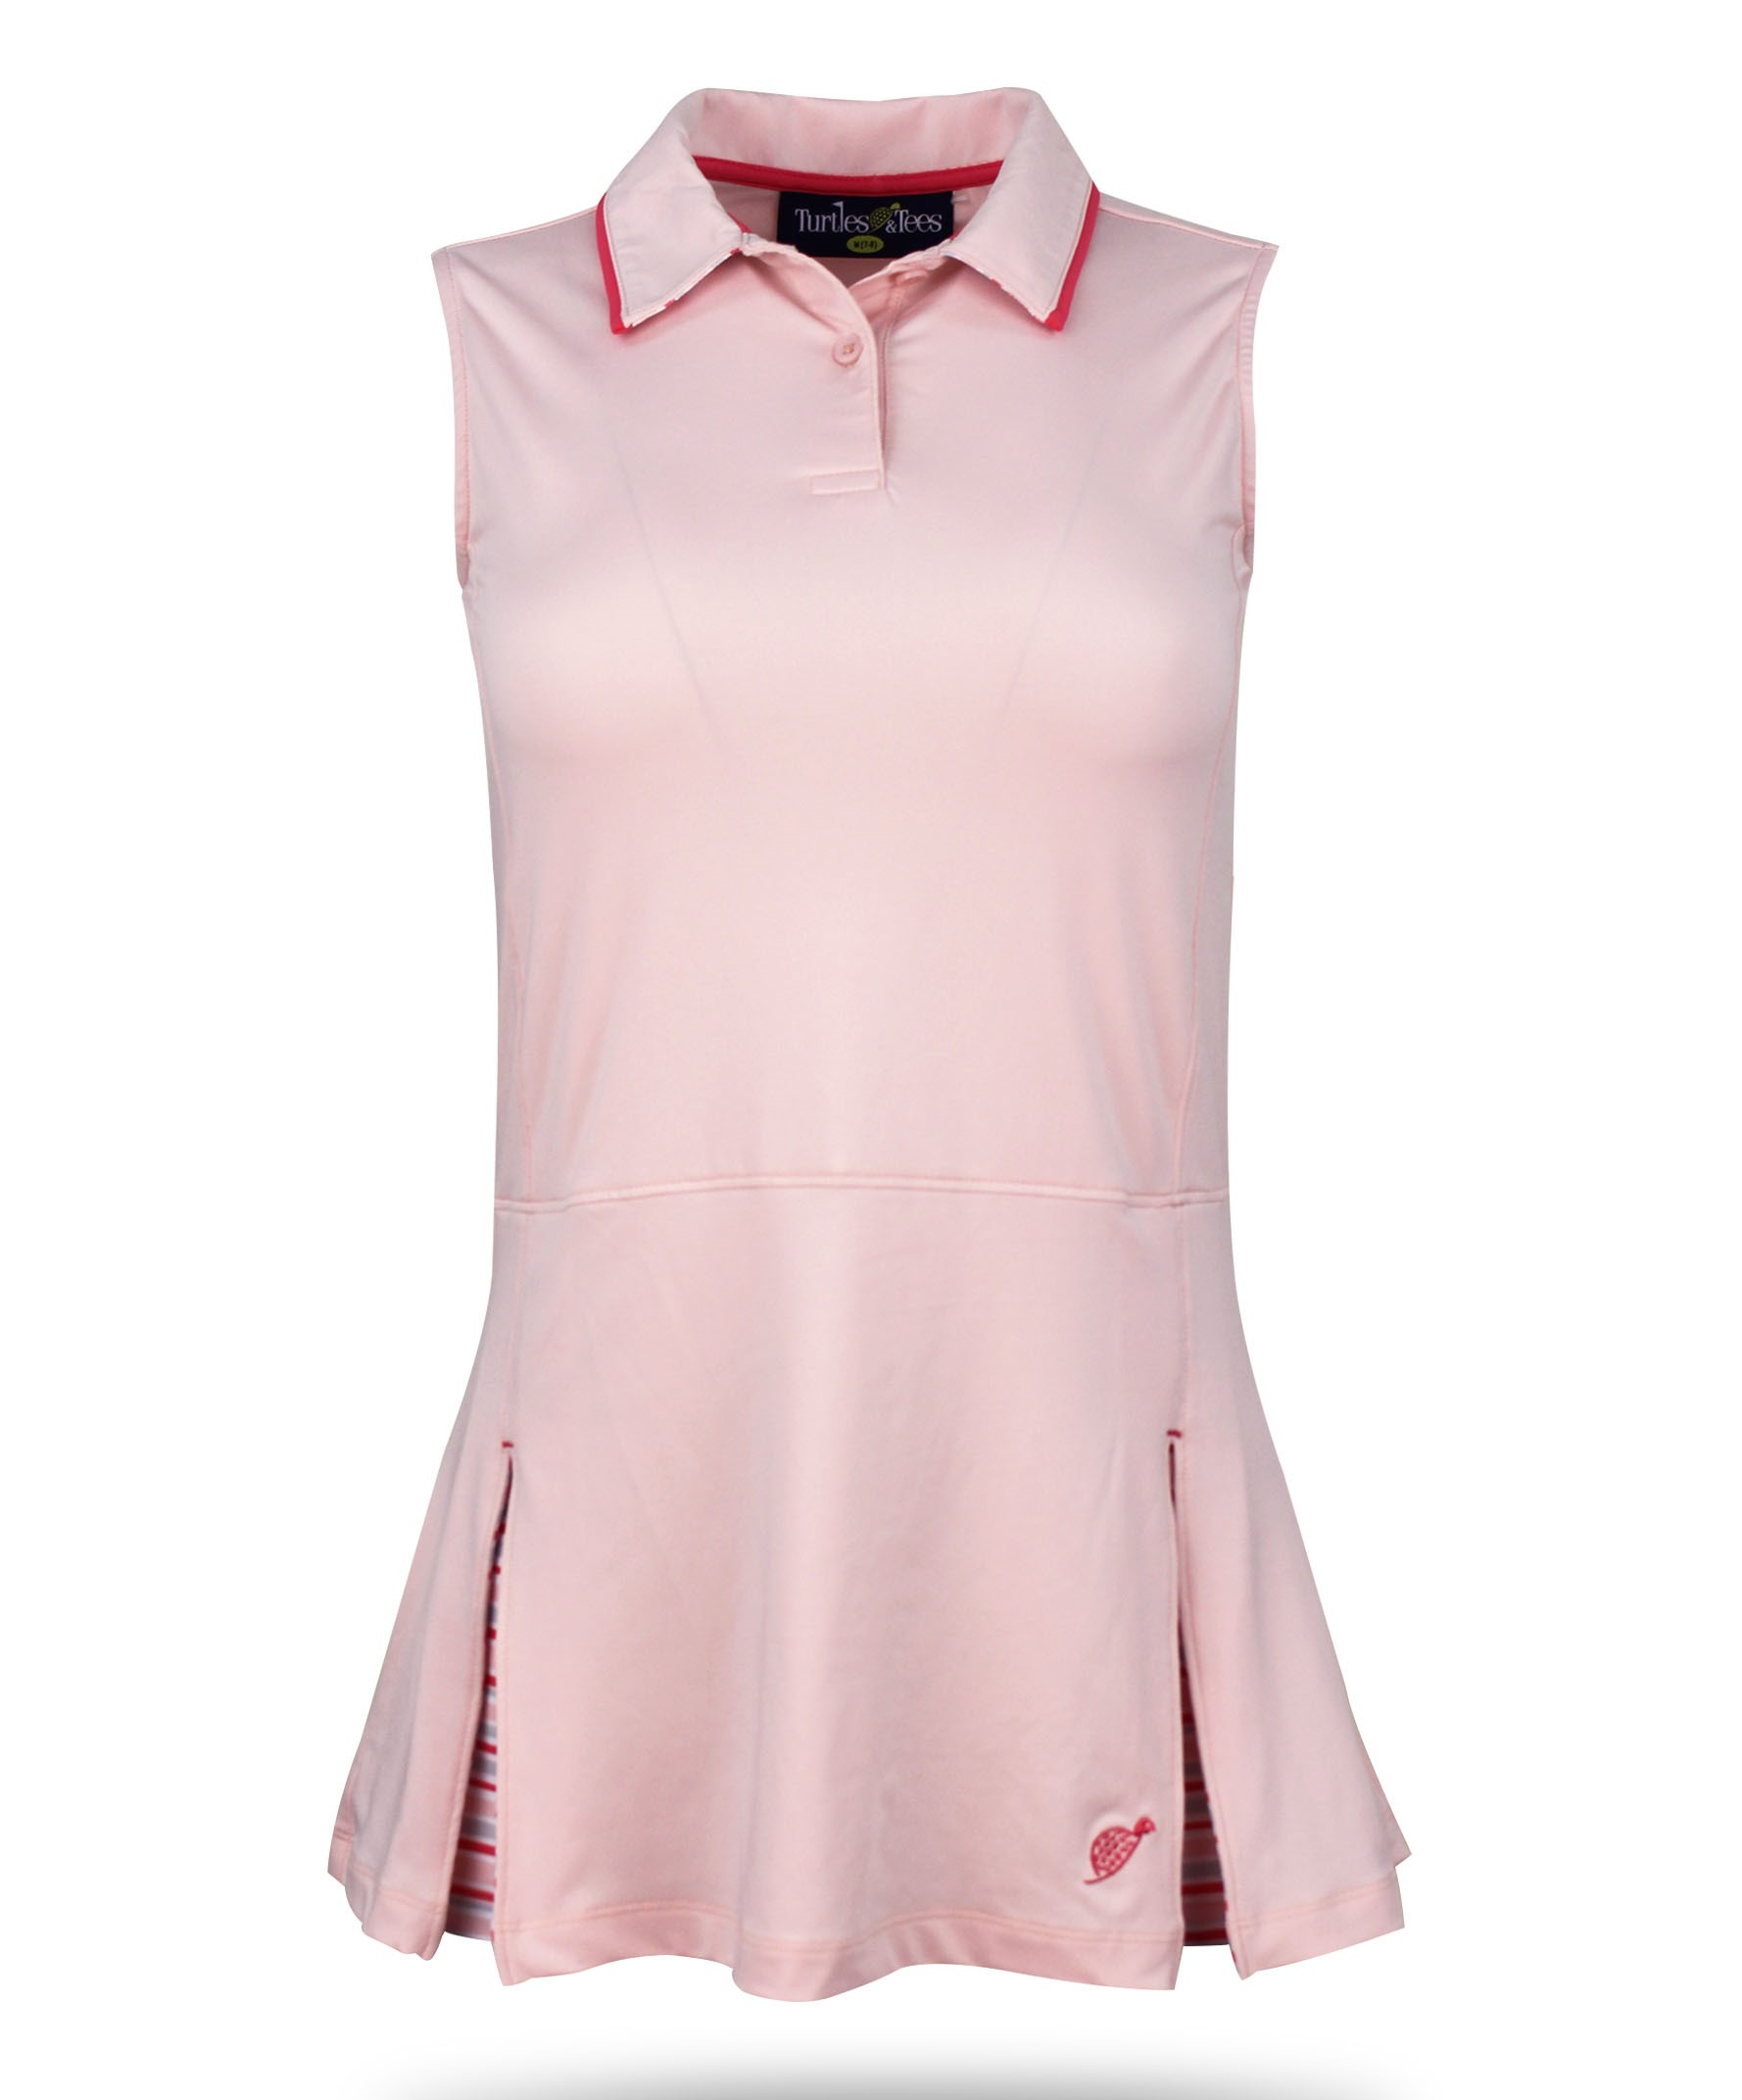 eb55a8caa Kate Girl s Golf and Tennis Dress in Pale Pink Print w Coordinating ...